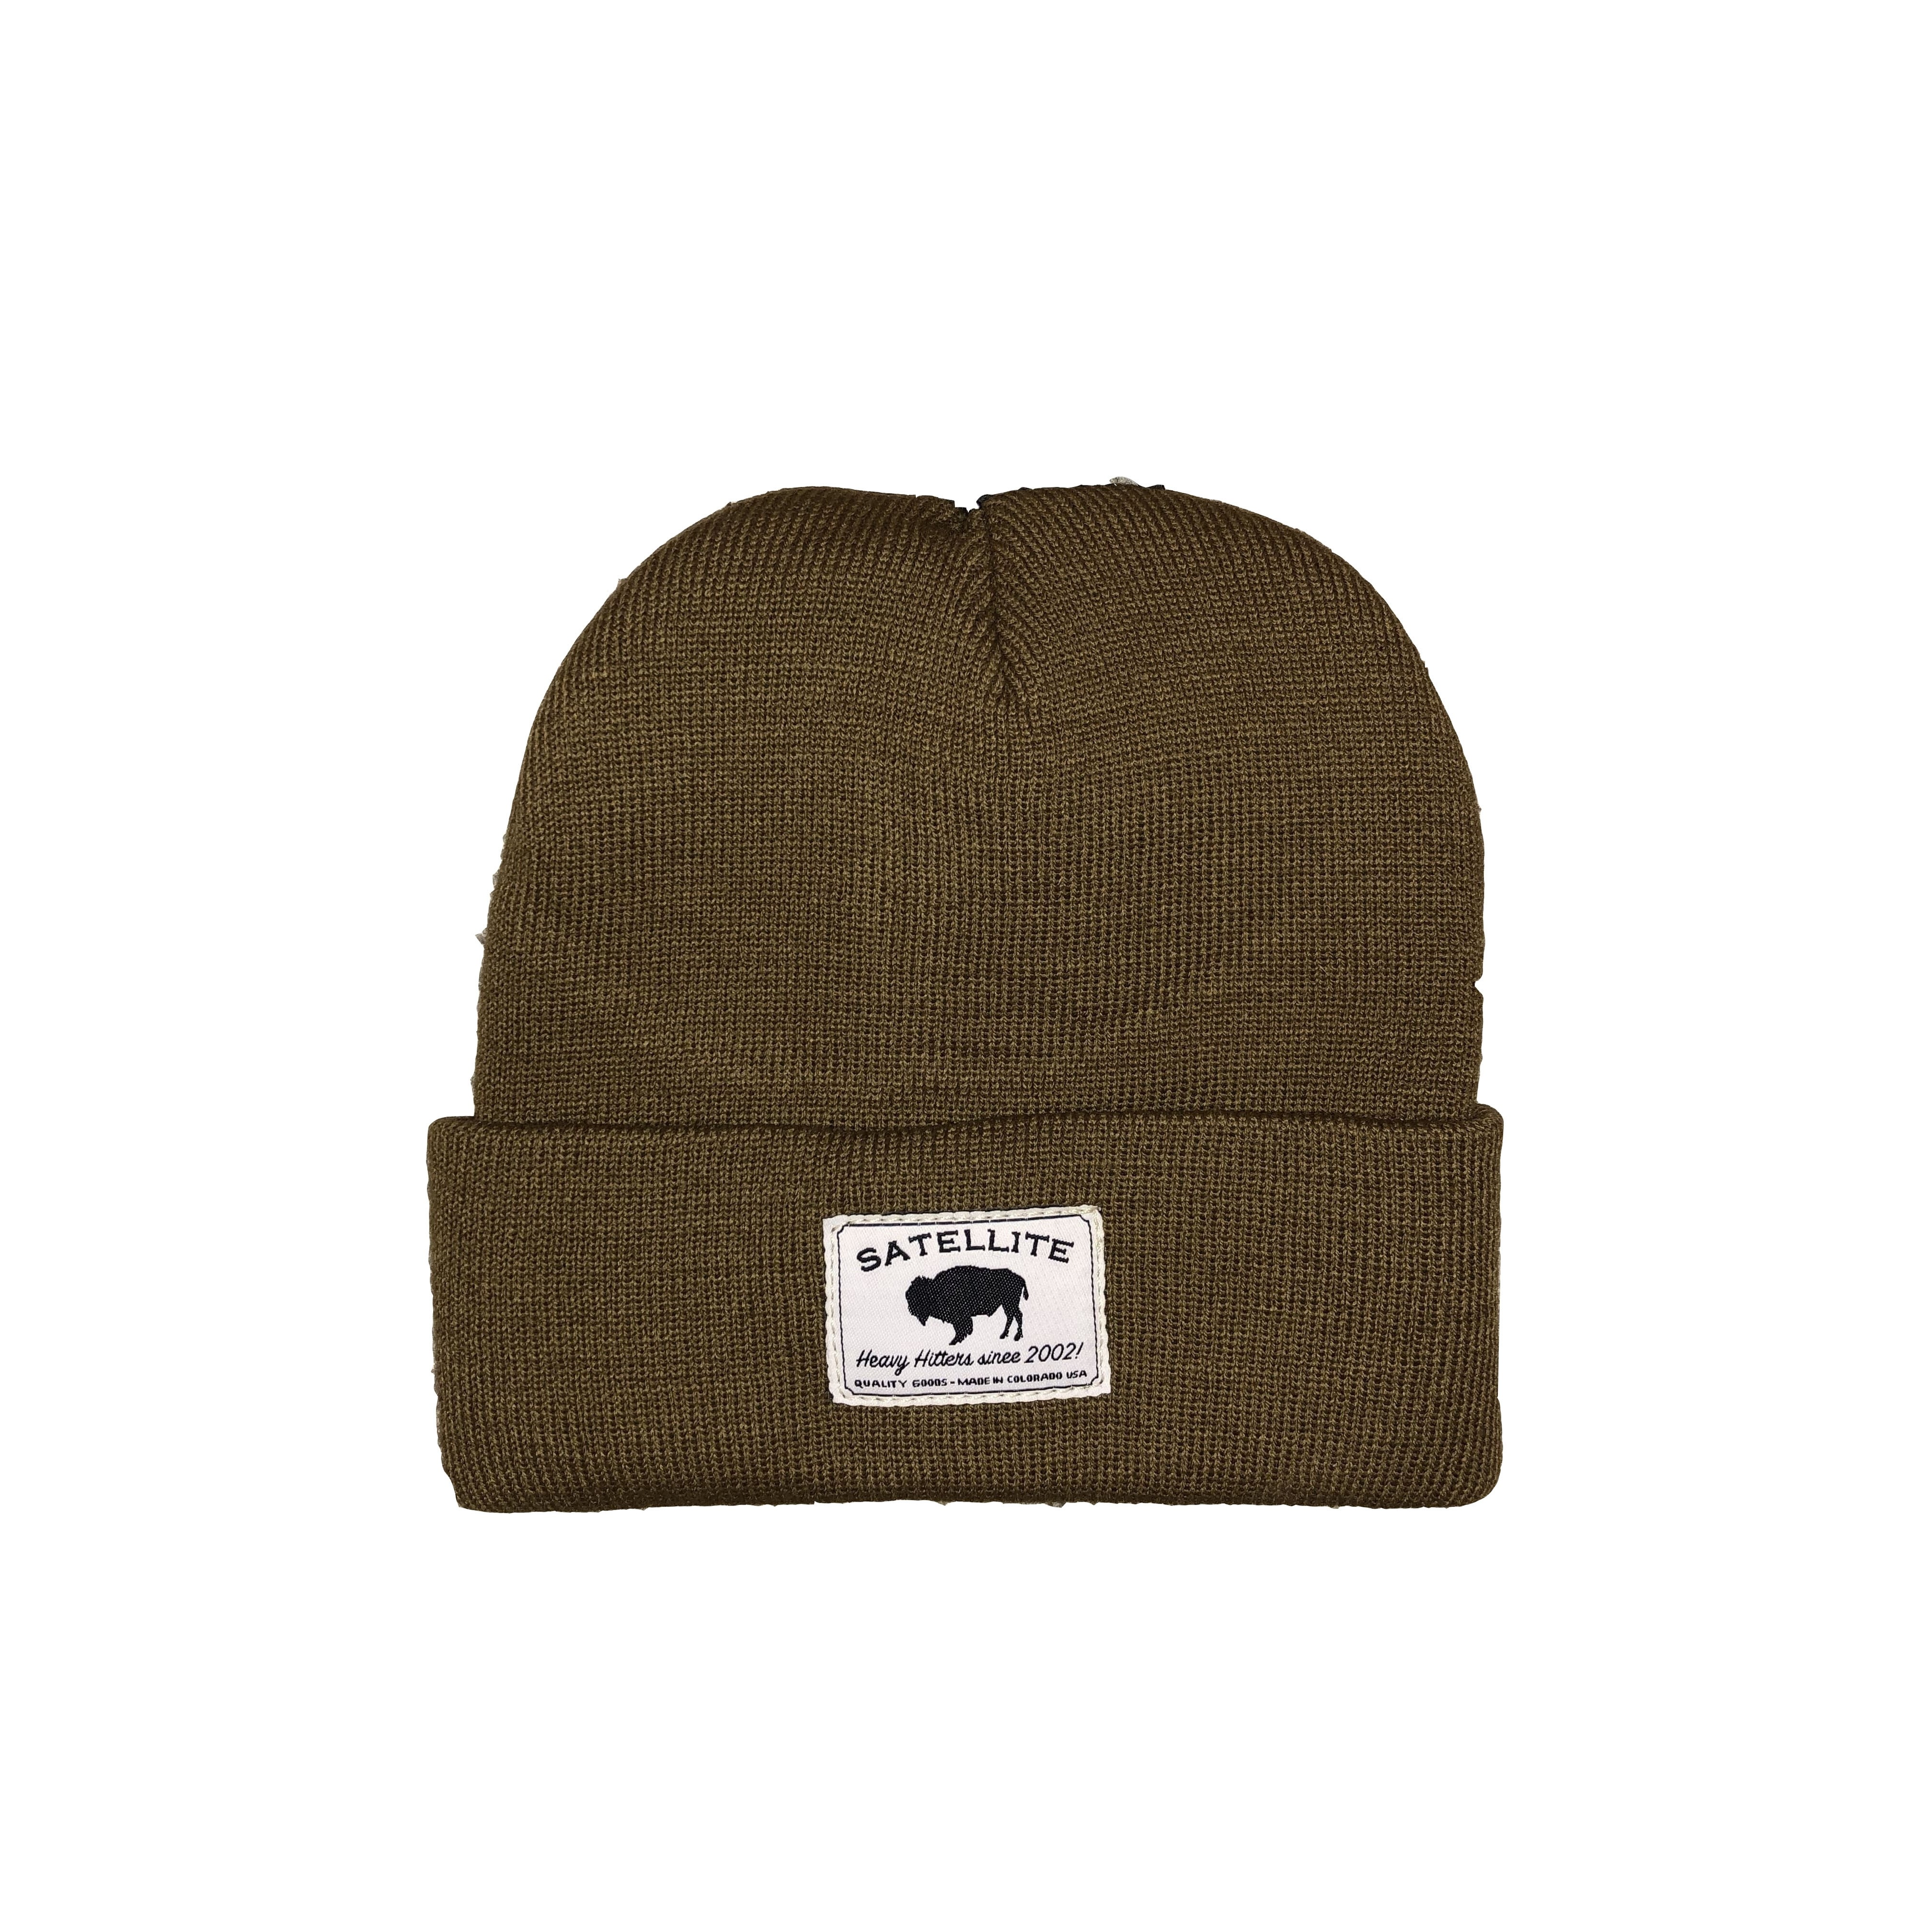 Satellite Fine Knit Watch Cap (Coyote/HeavyHitters)